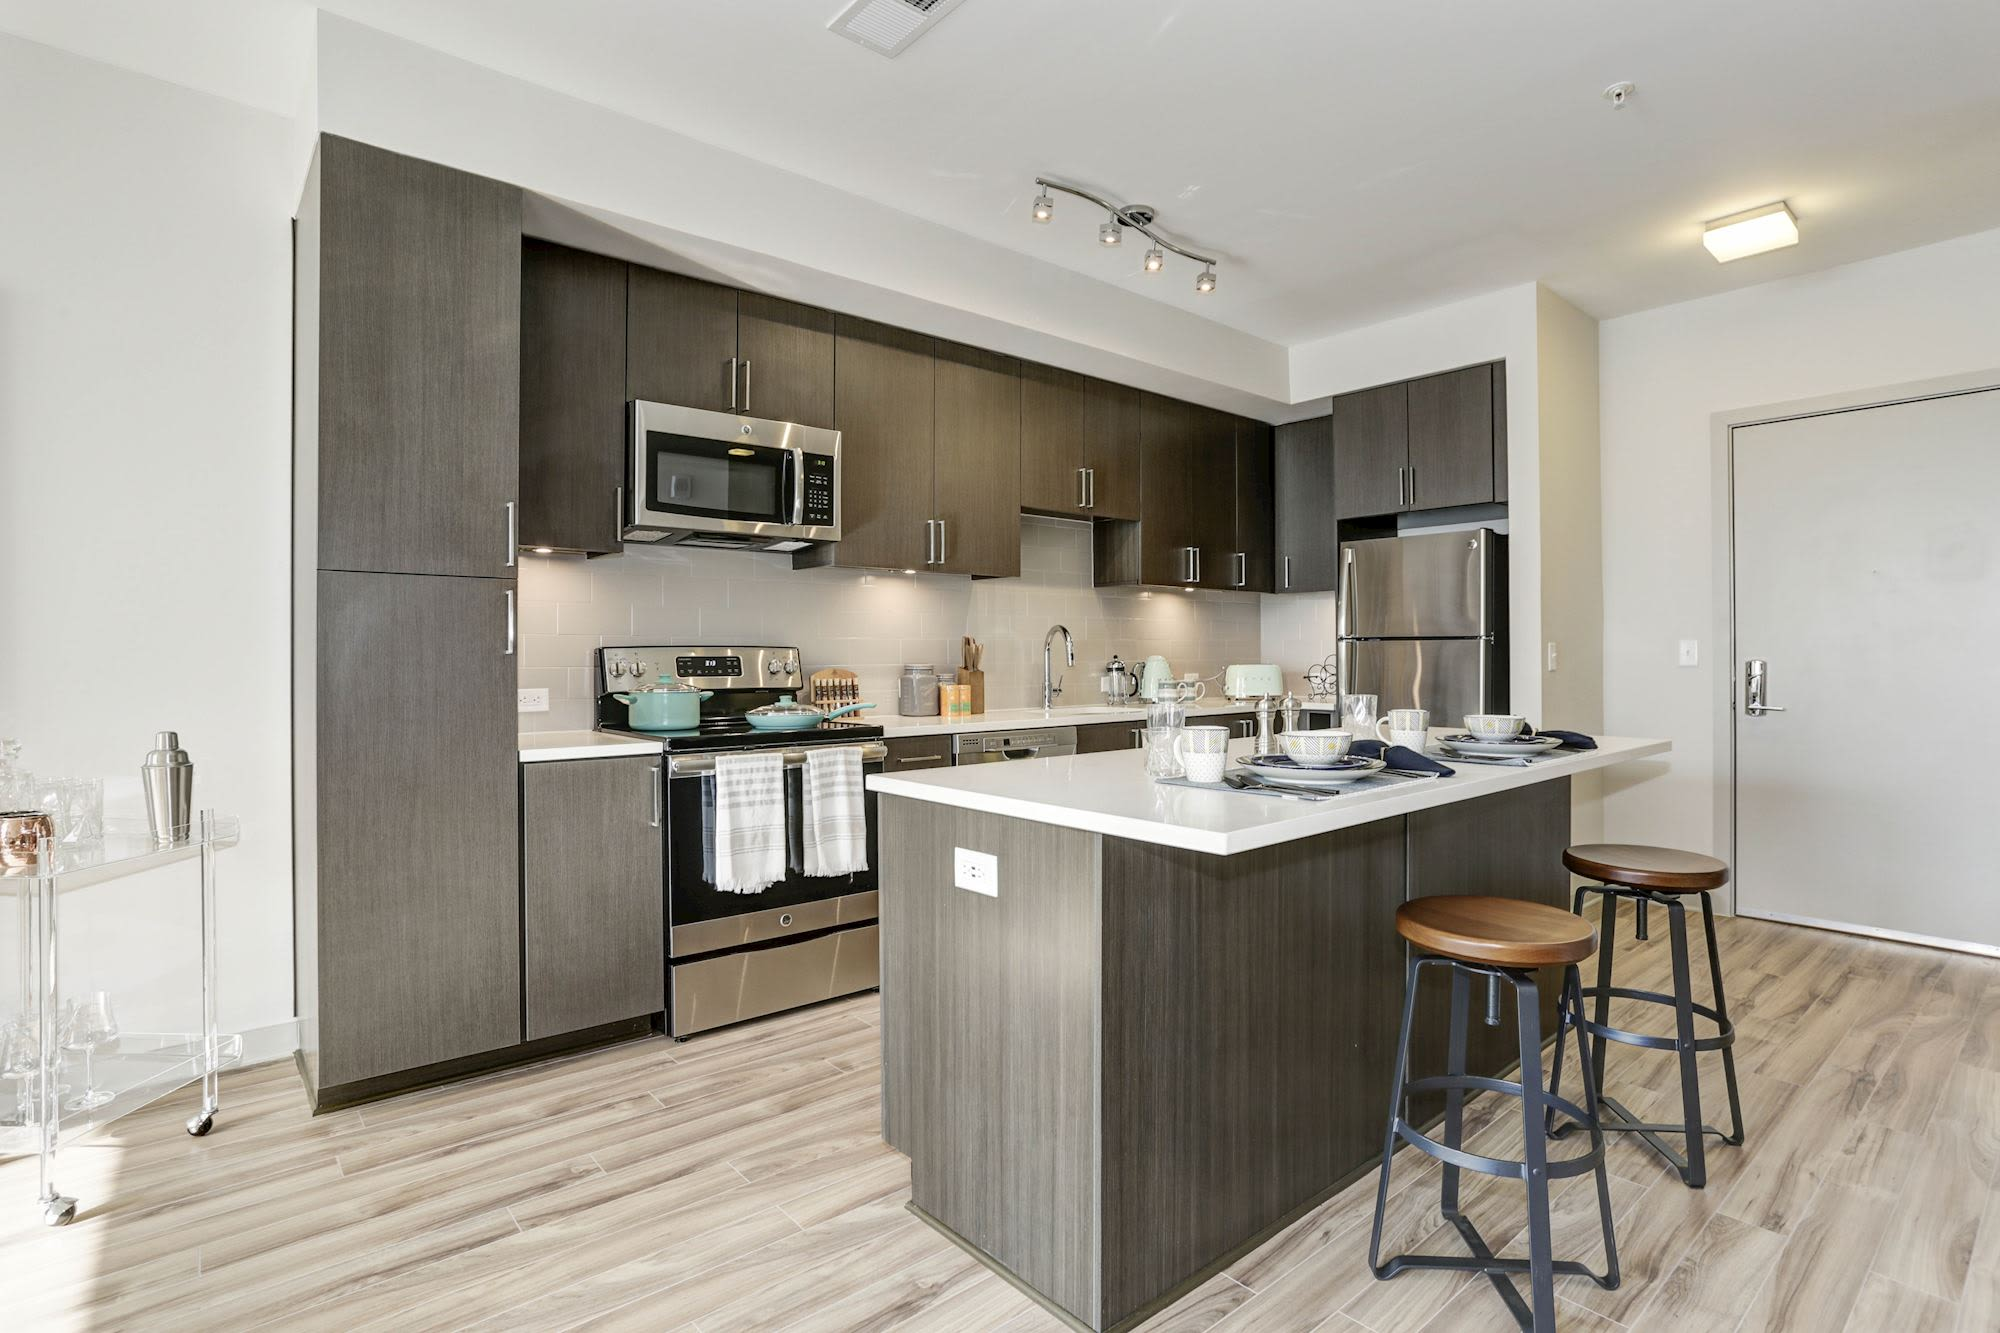 Model kitchen with chef's island at Metropolitan Rockville Town Center in Rockville, Maryland